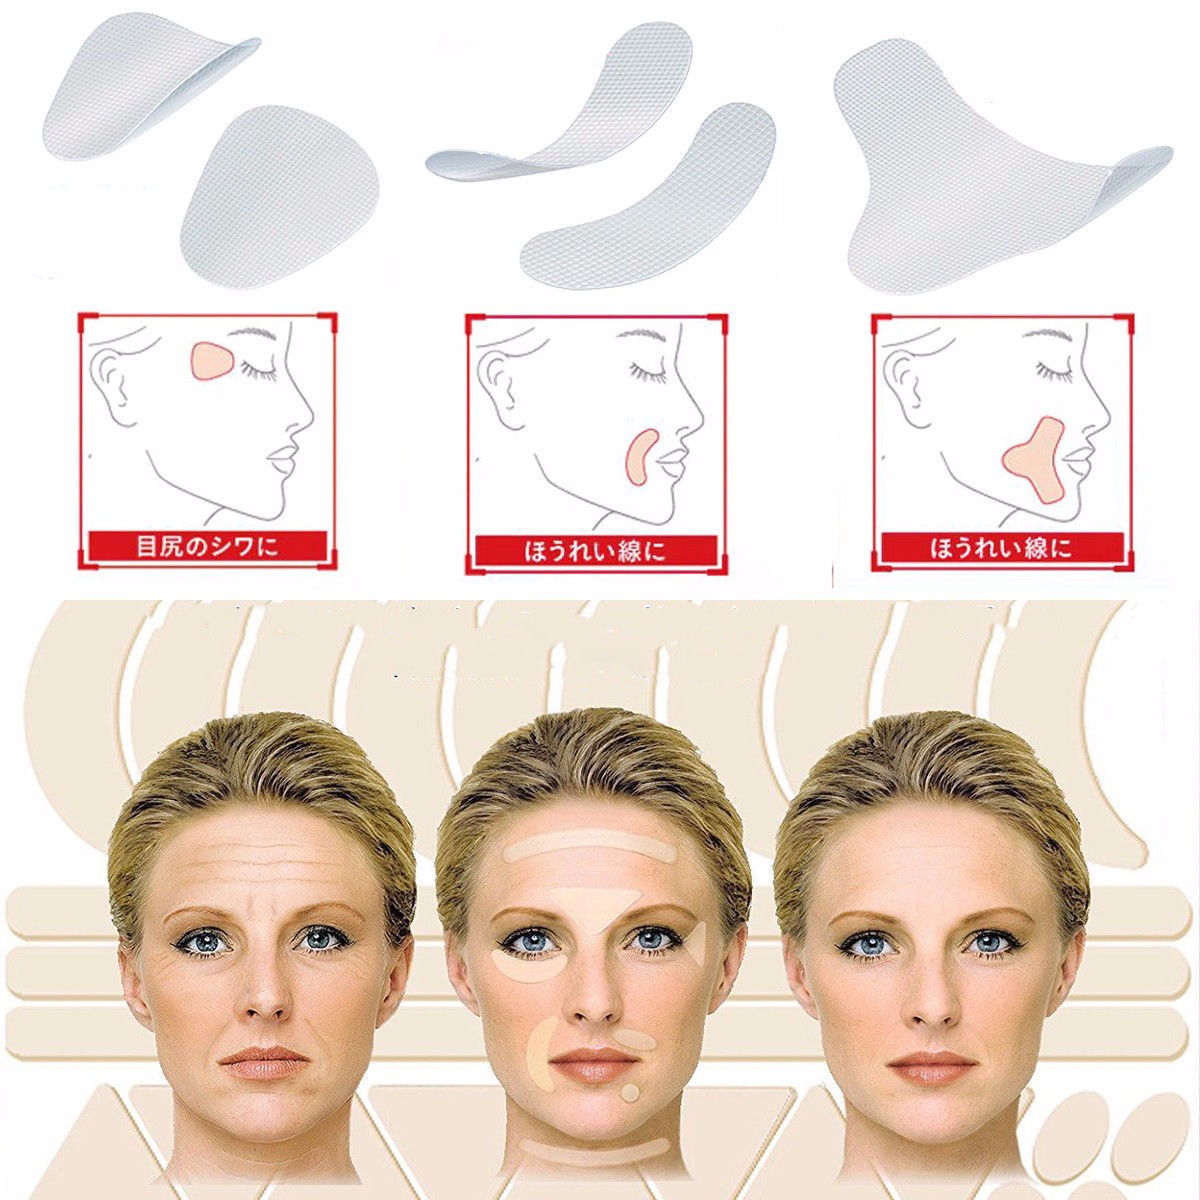 ELECOOL Women Facial Sagging Skin Tape Frown Smile Lines V-Shape Fast Lift Up Makeup